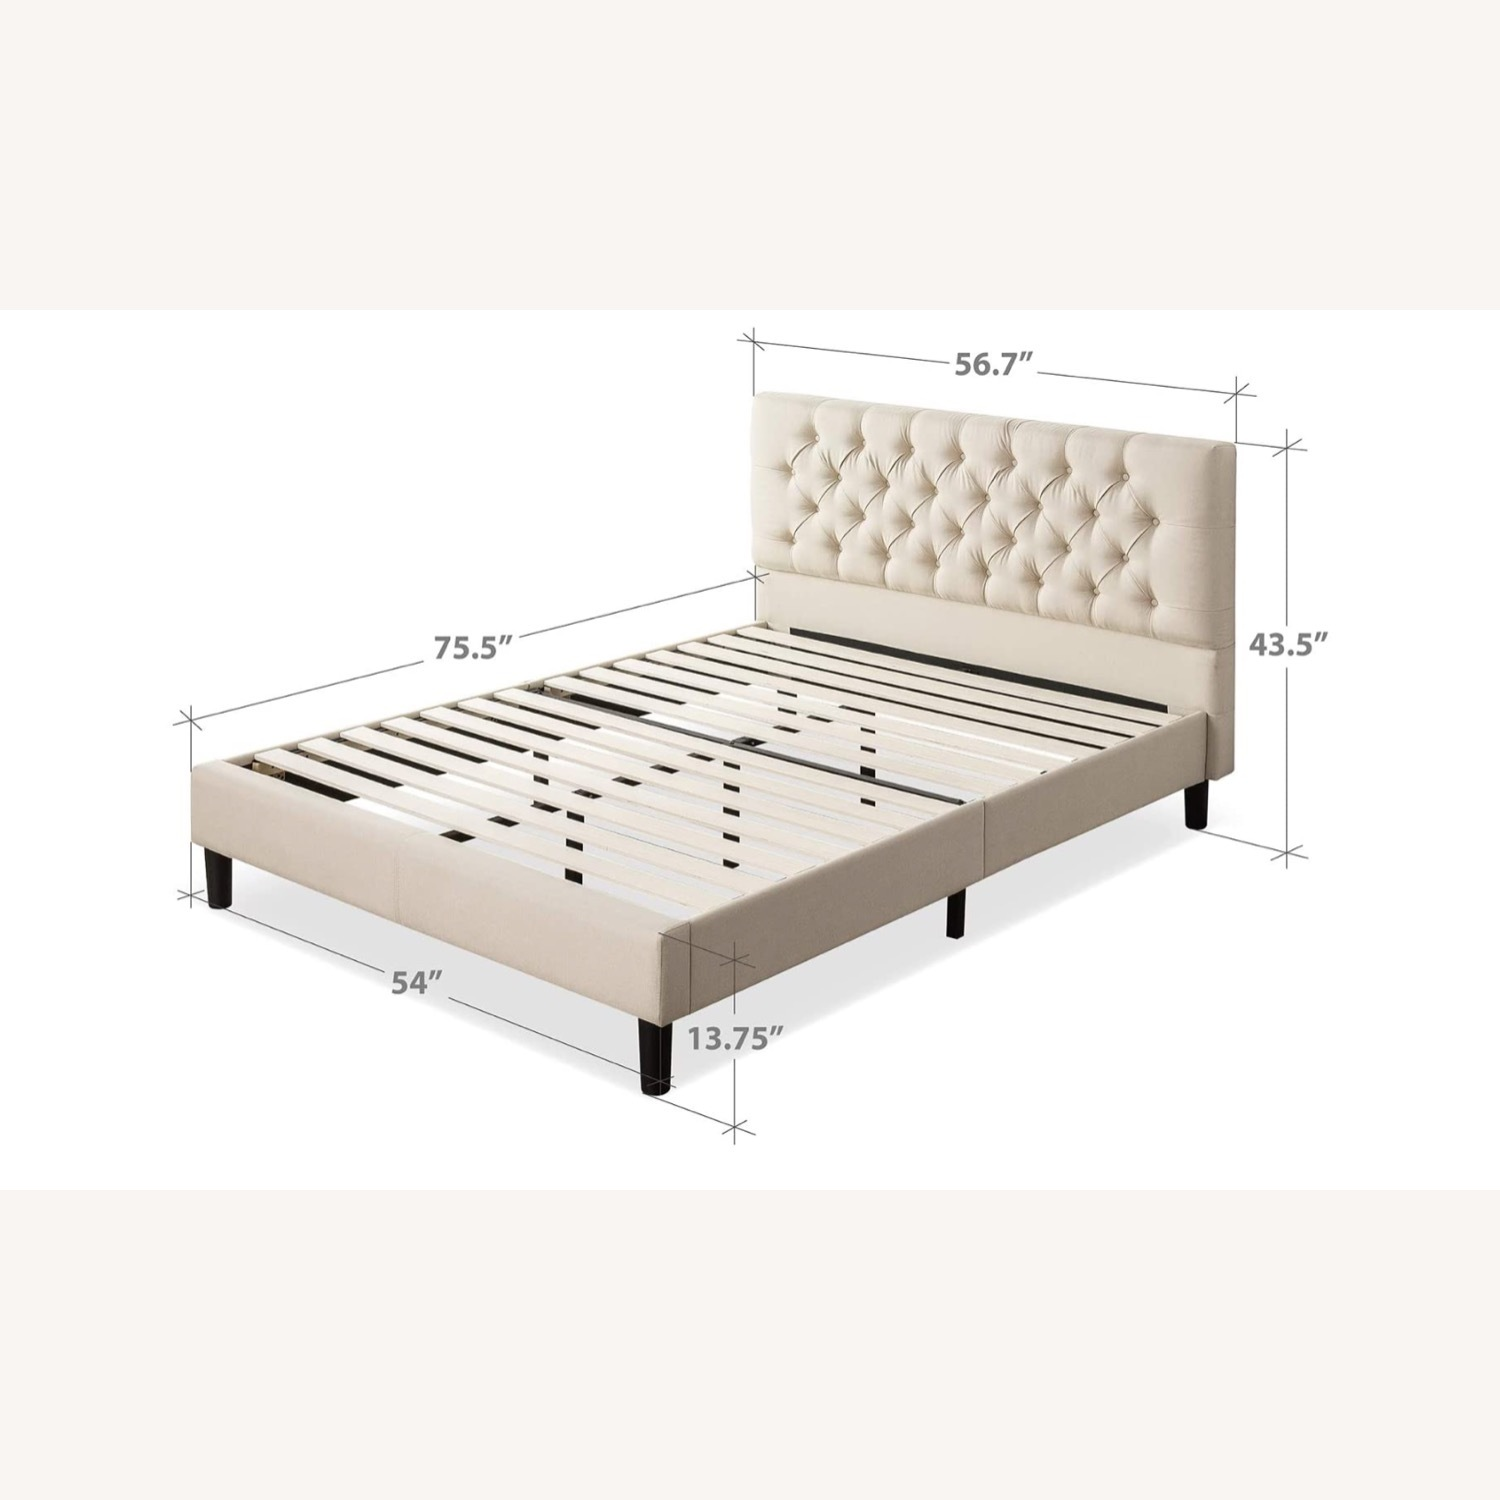 Zin Home Full Tufted Bed Frame - image-2